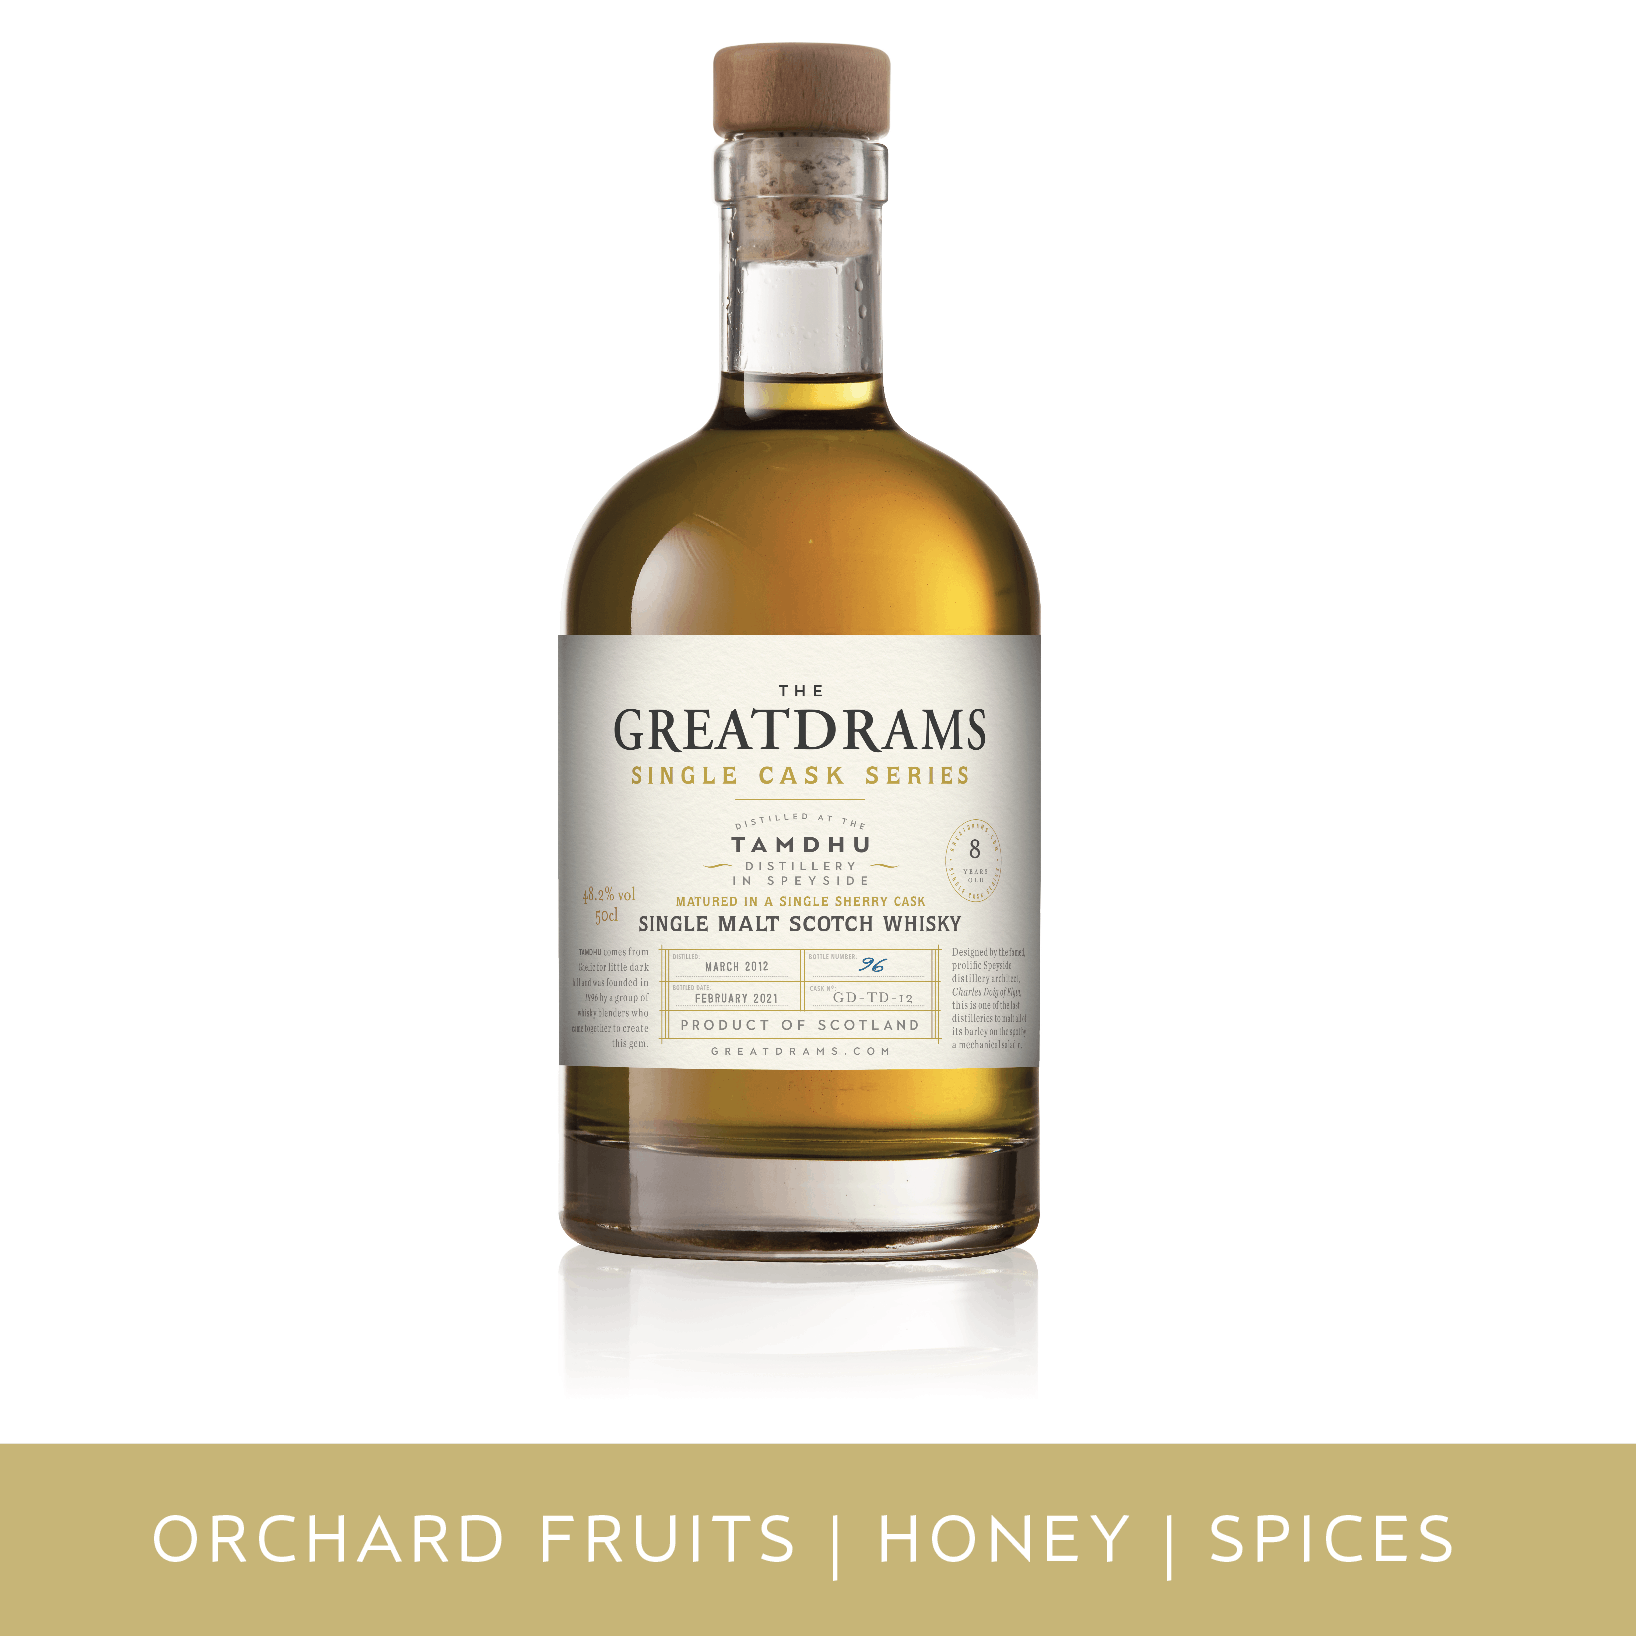 GreatDrams Tamdhu Single Cask